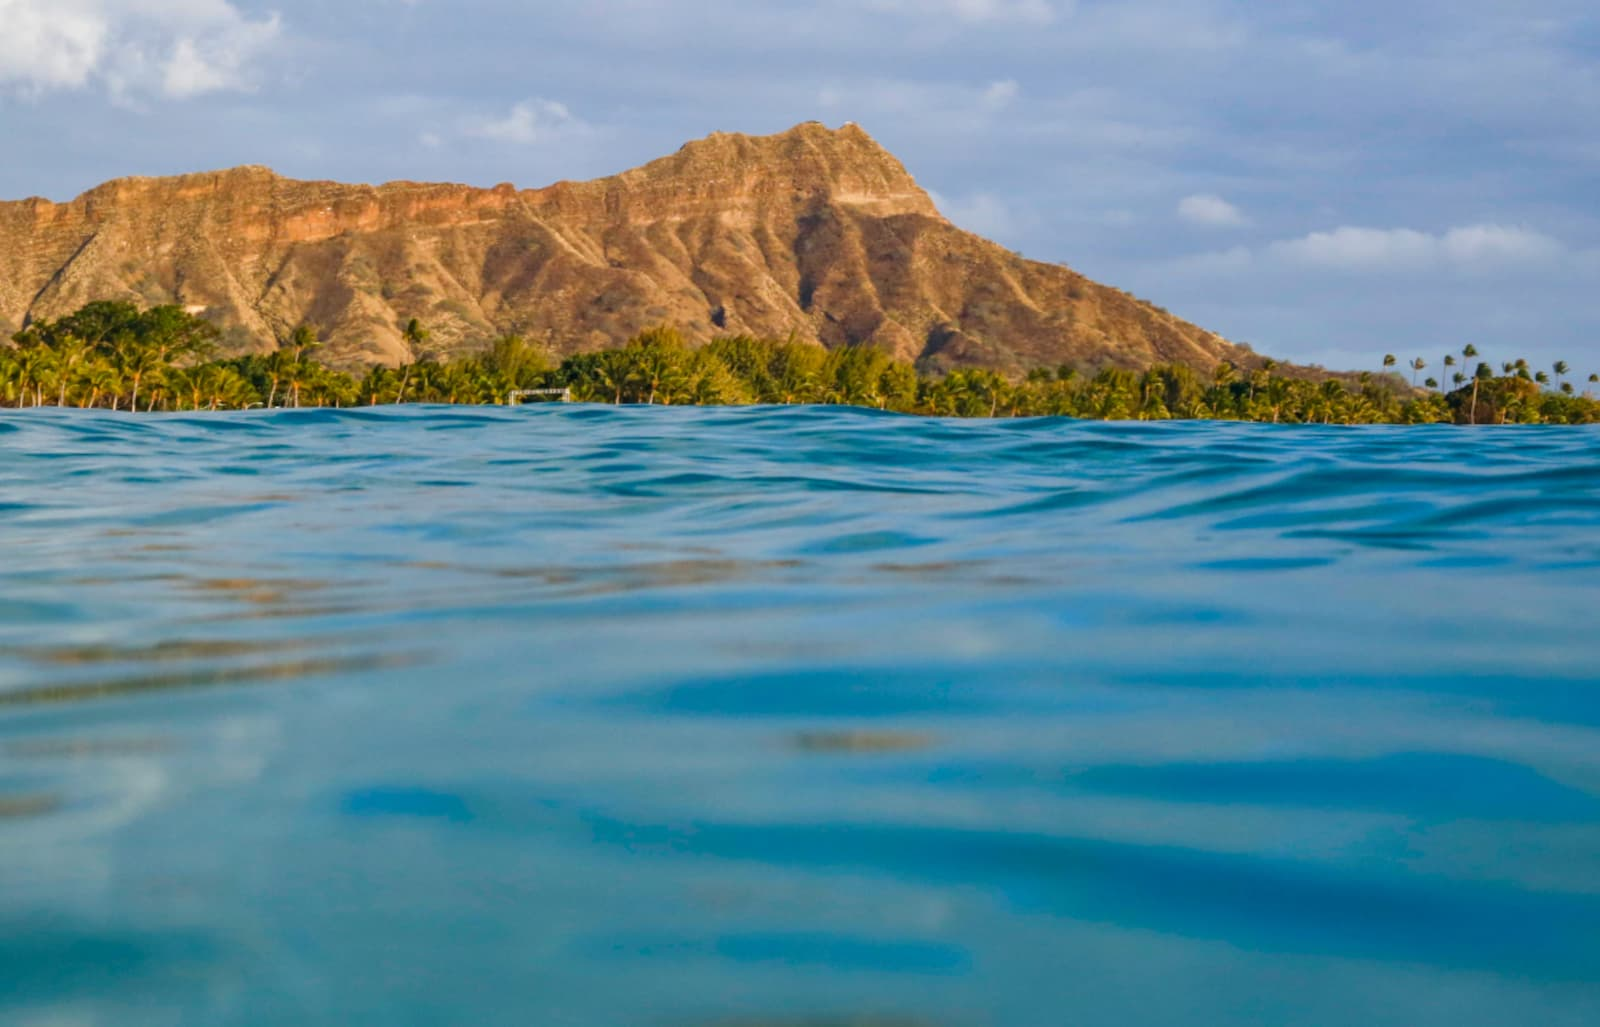 View from the ocean of a nearby island with a mountain range and palm trees